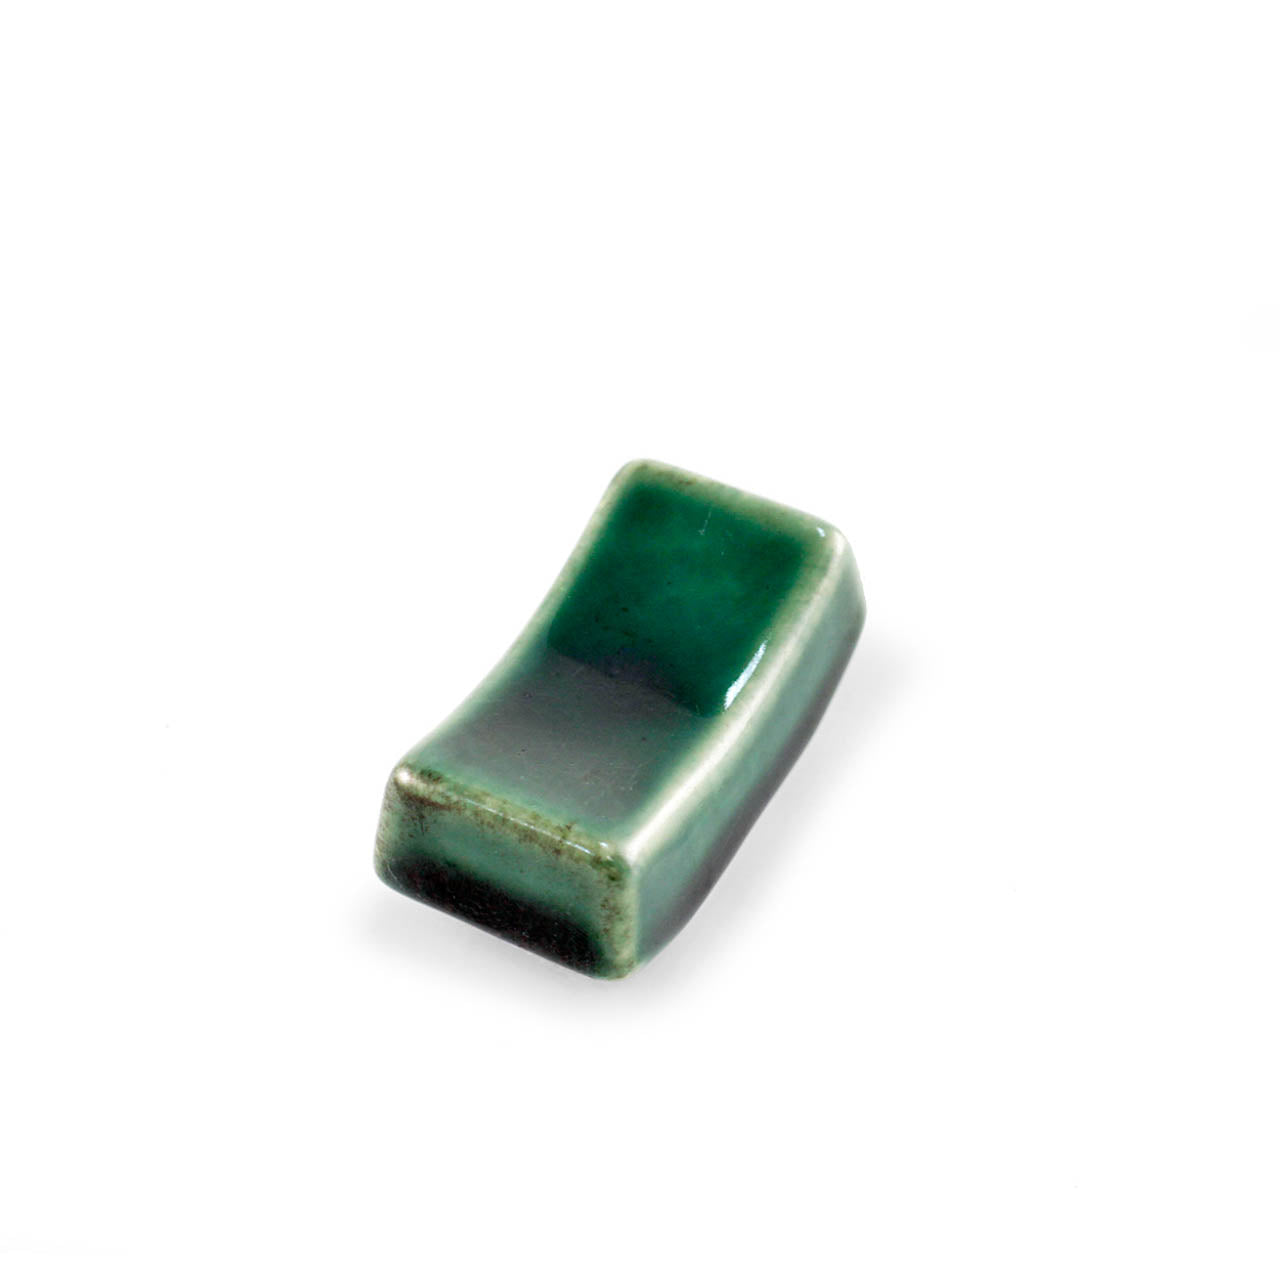 Oribe Green Chopstick Rest